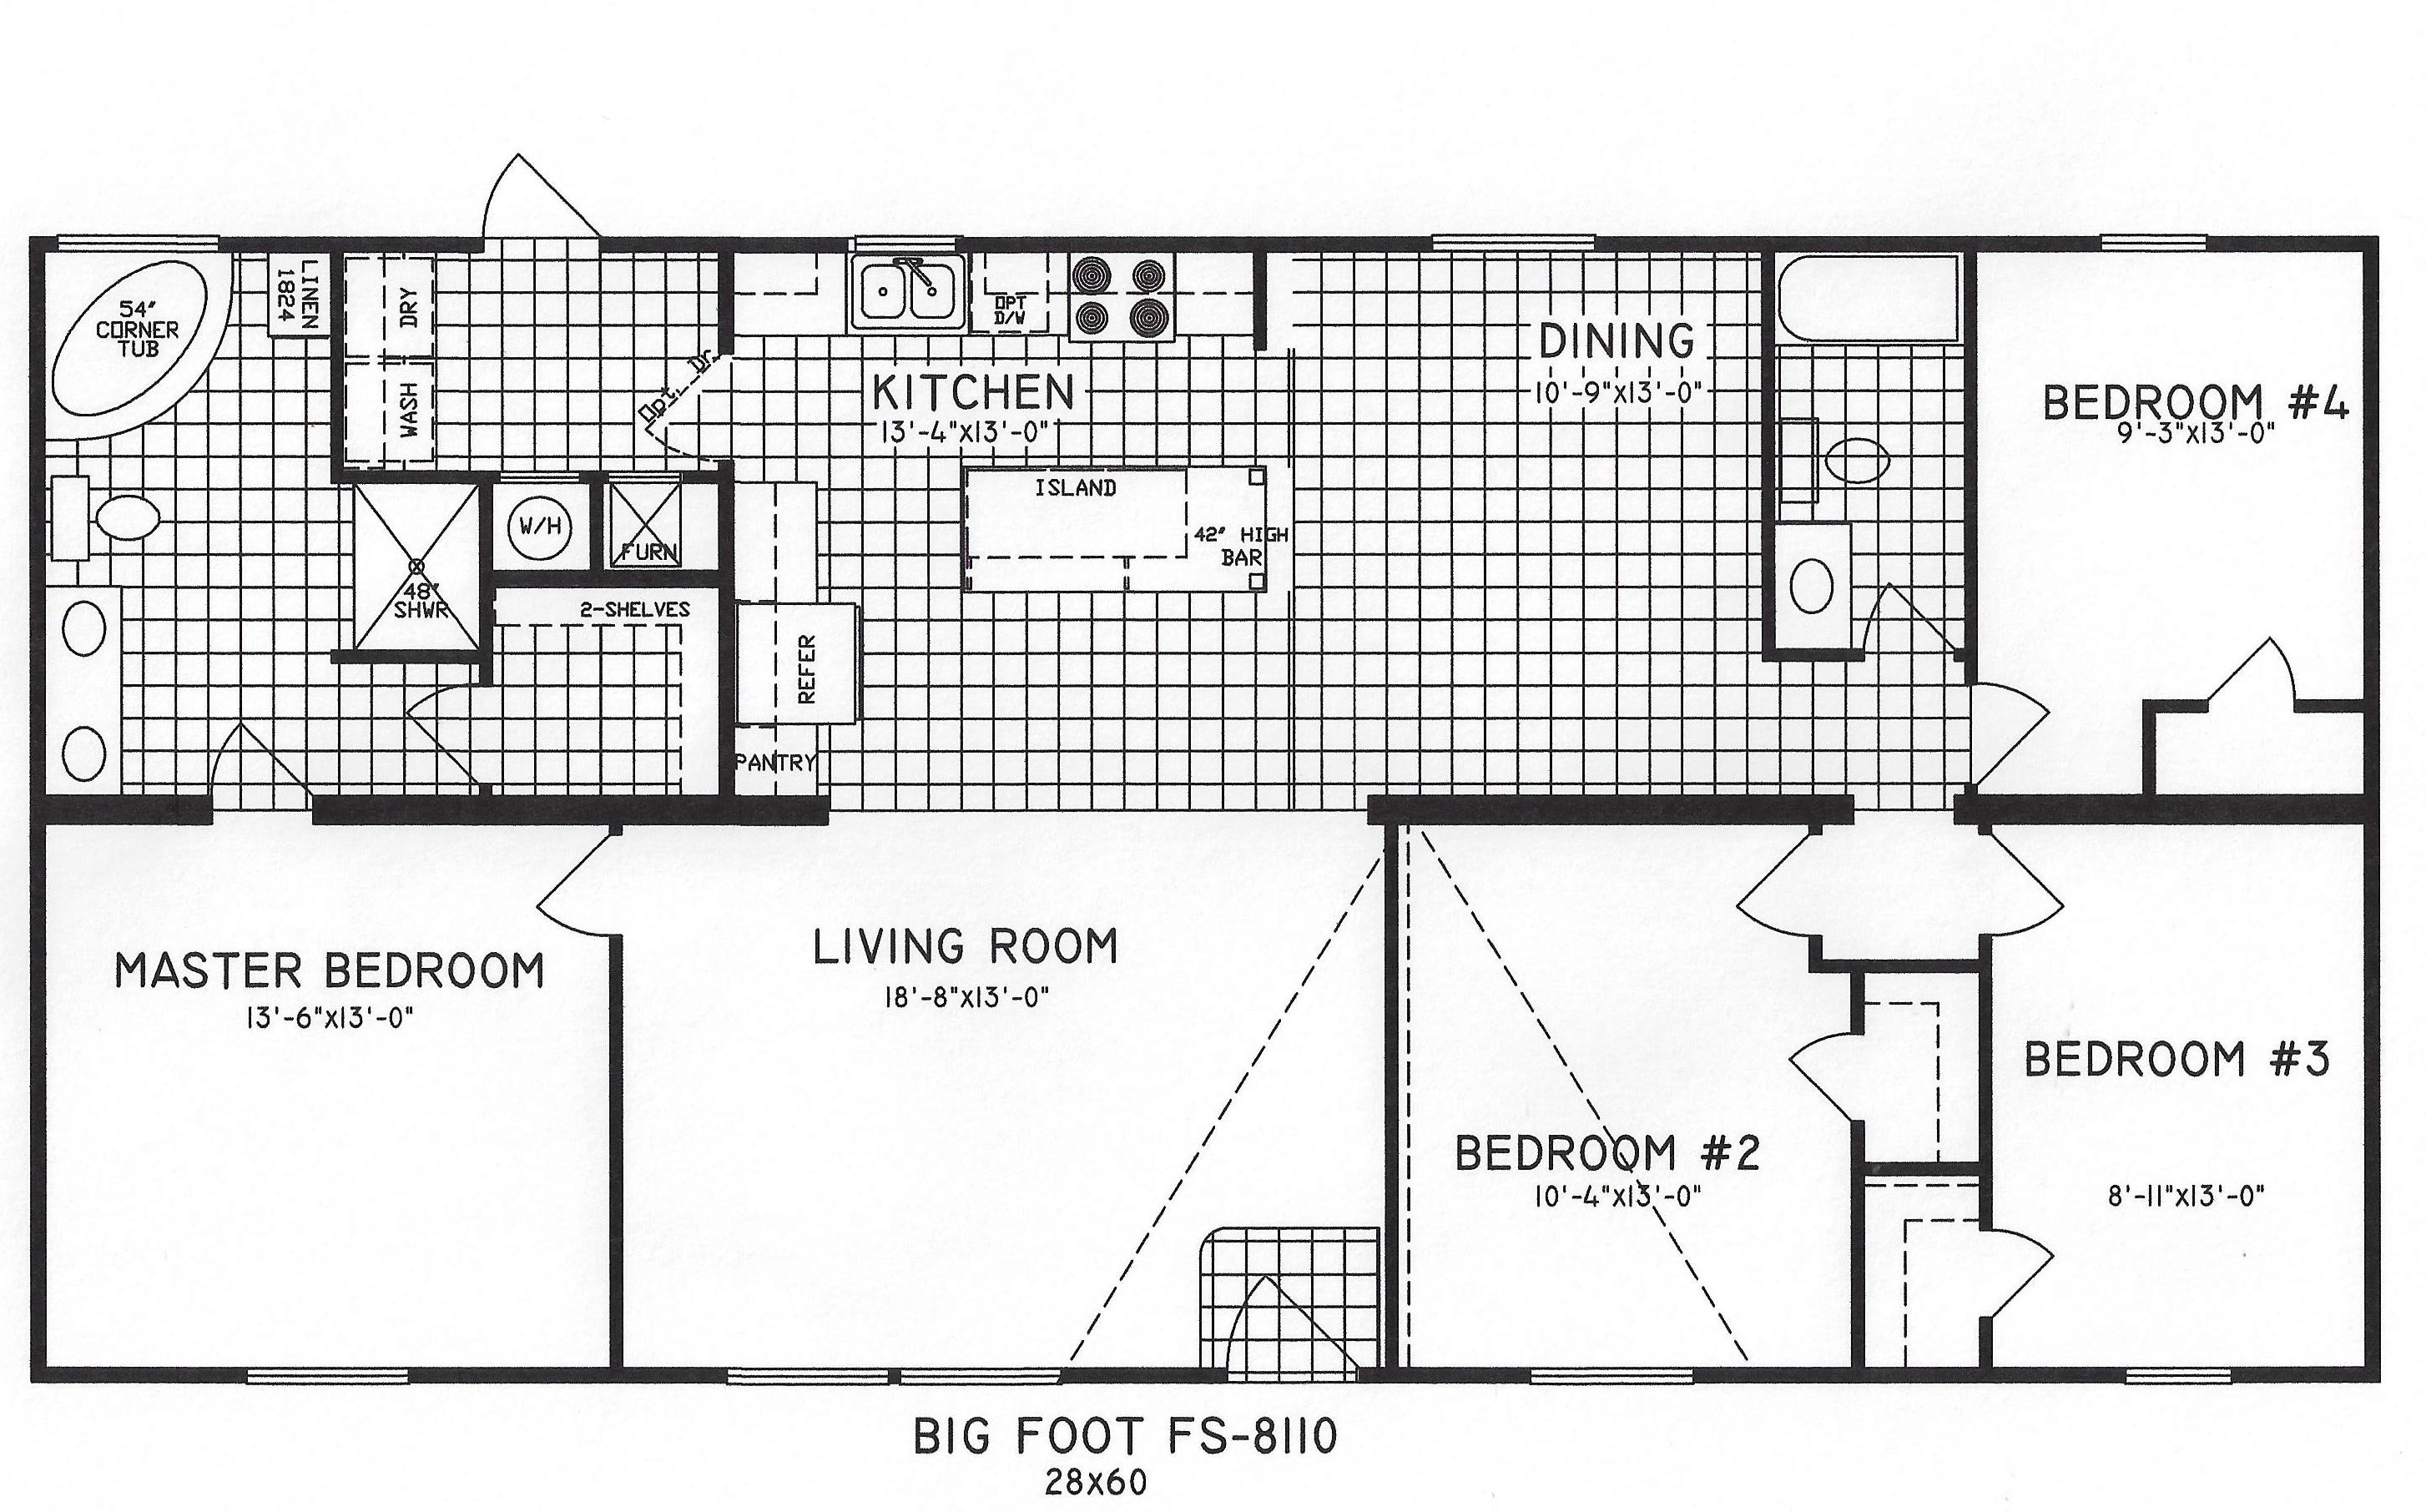 4 bedroom floor plan c 8110 hawks homes manufactured for 4 bedroom home plans and designs